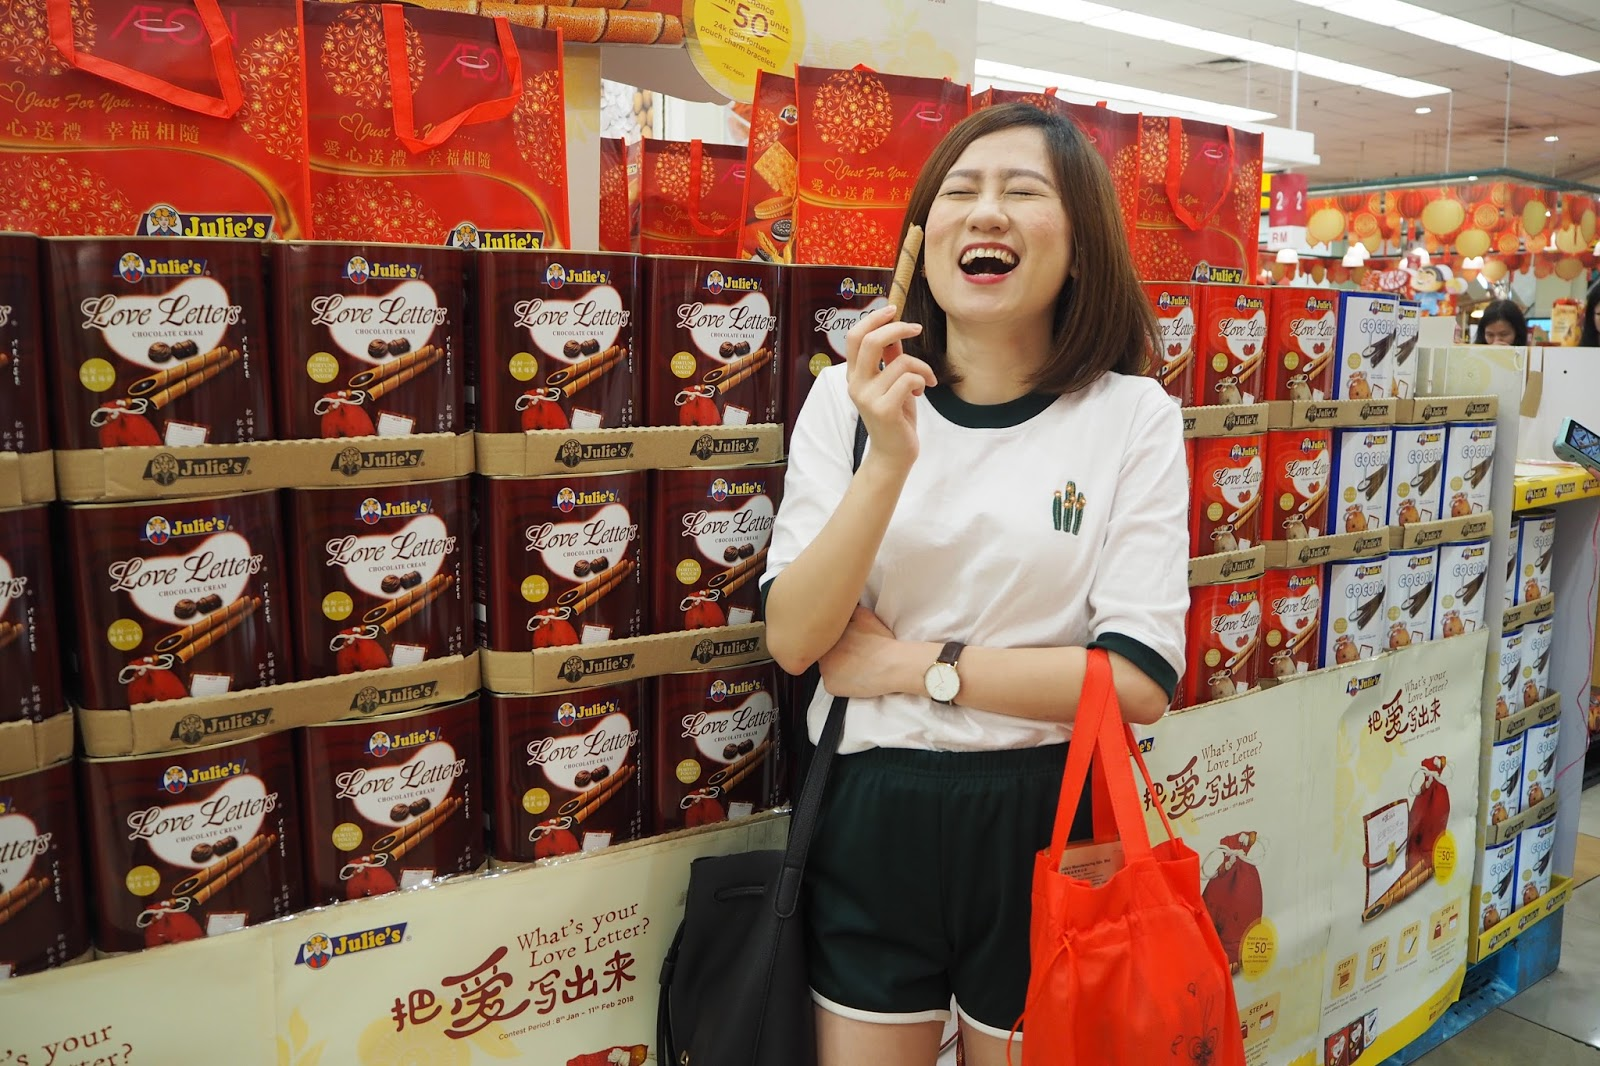 [Event] Julie's Collaborates with Celebrity Chef Martin Yan - Introducing Creative Recipes with love during this Chinese New Year @ Aeon Mahkota Cheras